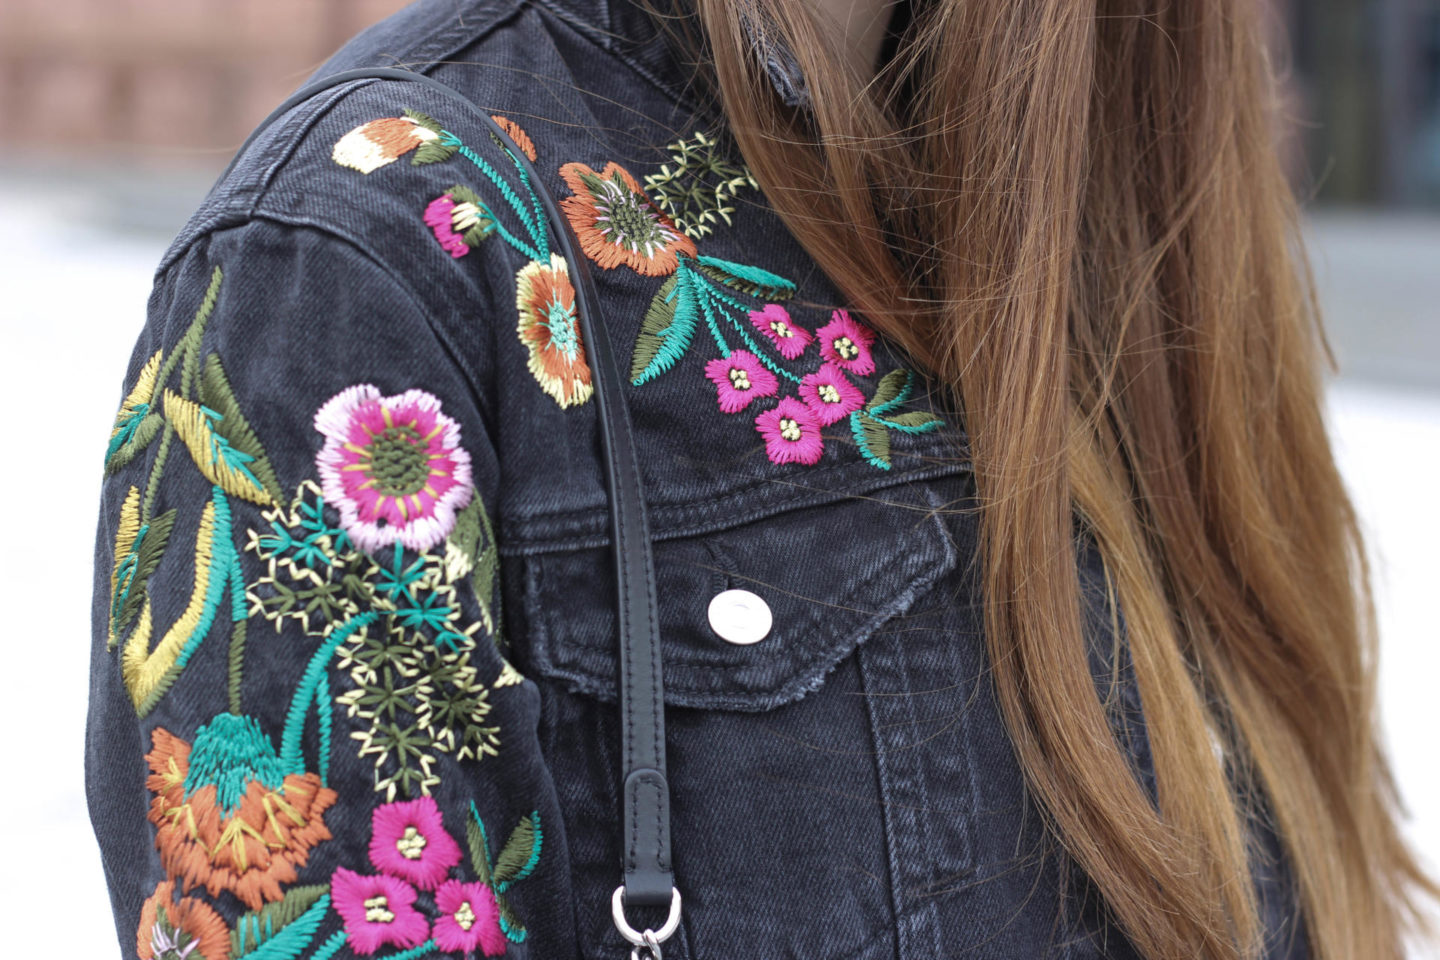 Flower Embroidery Topshop